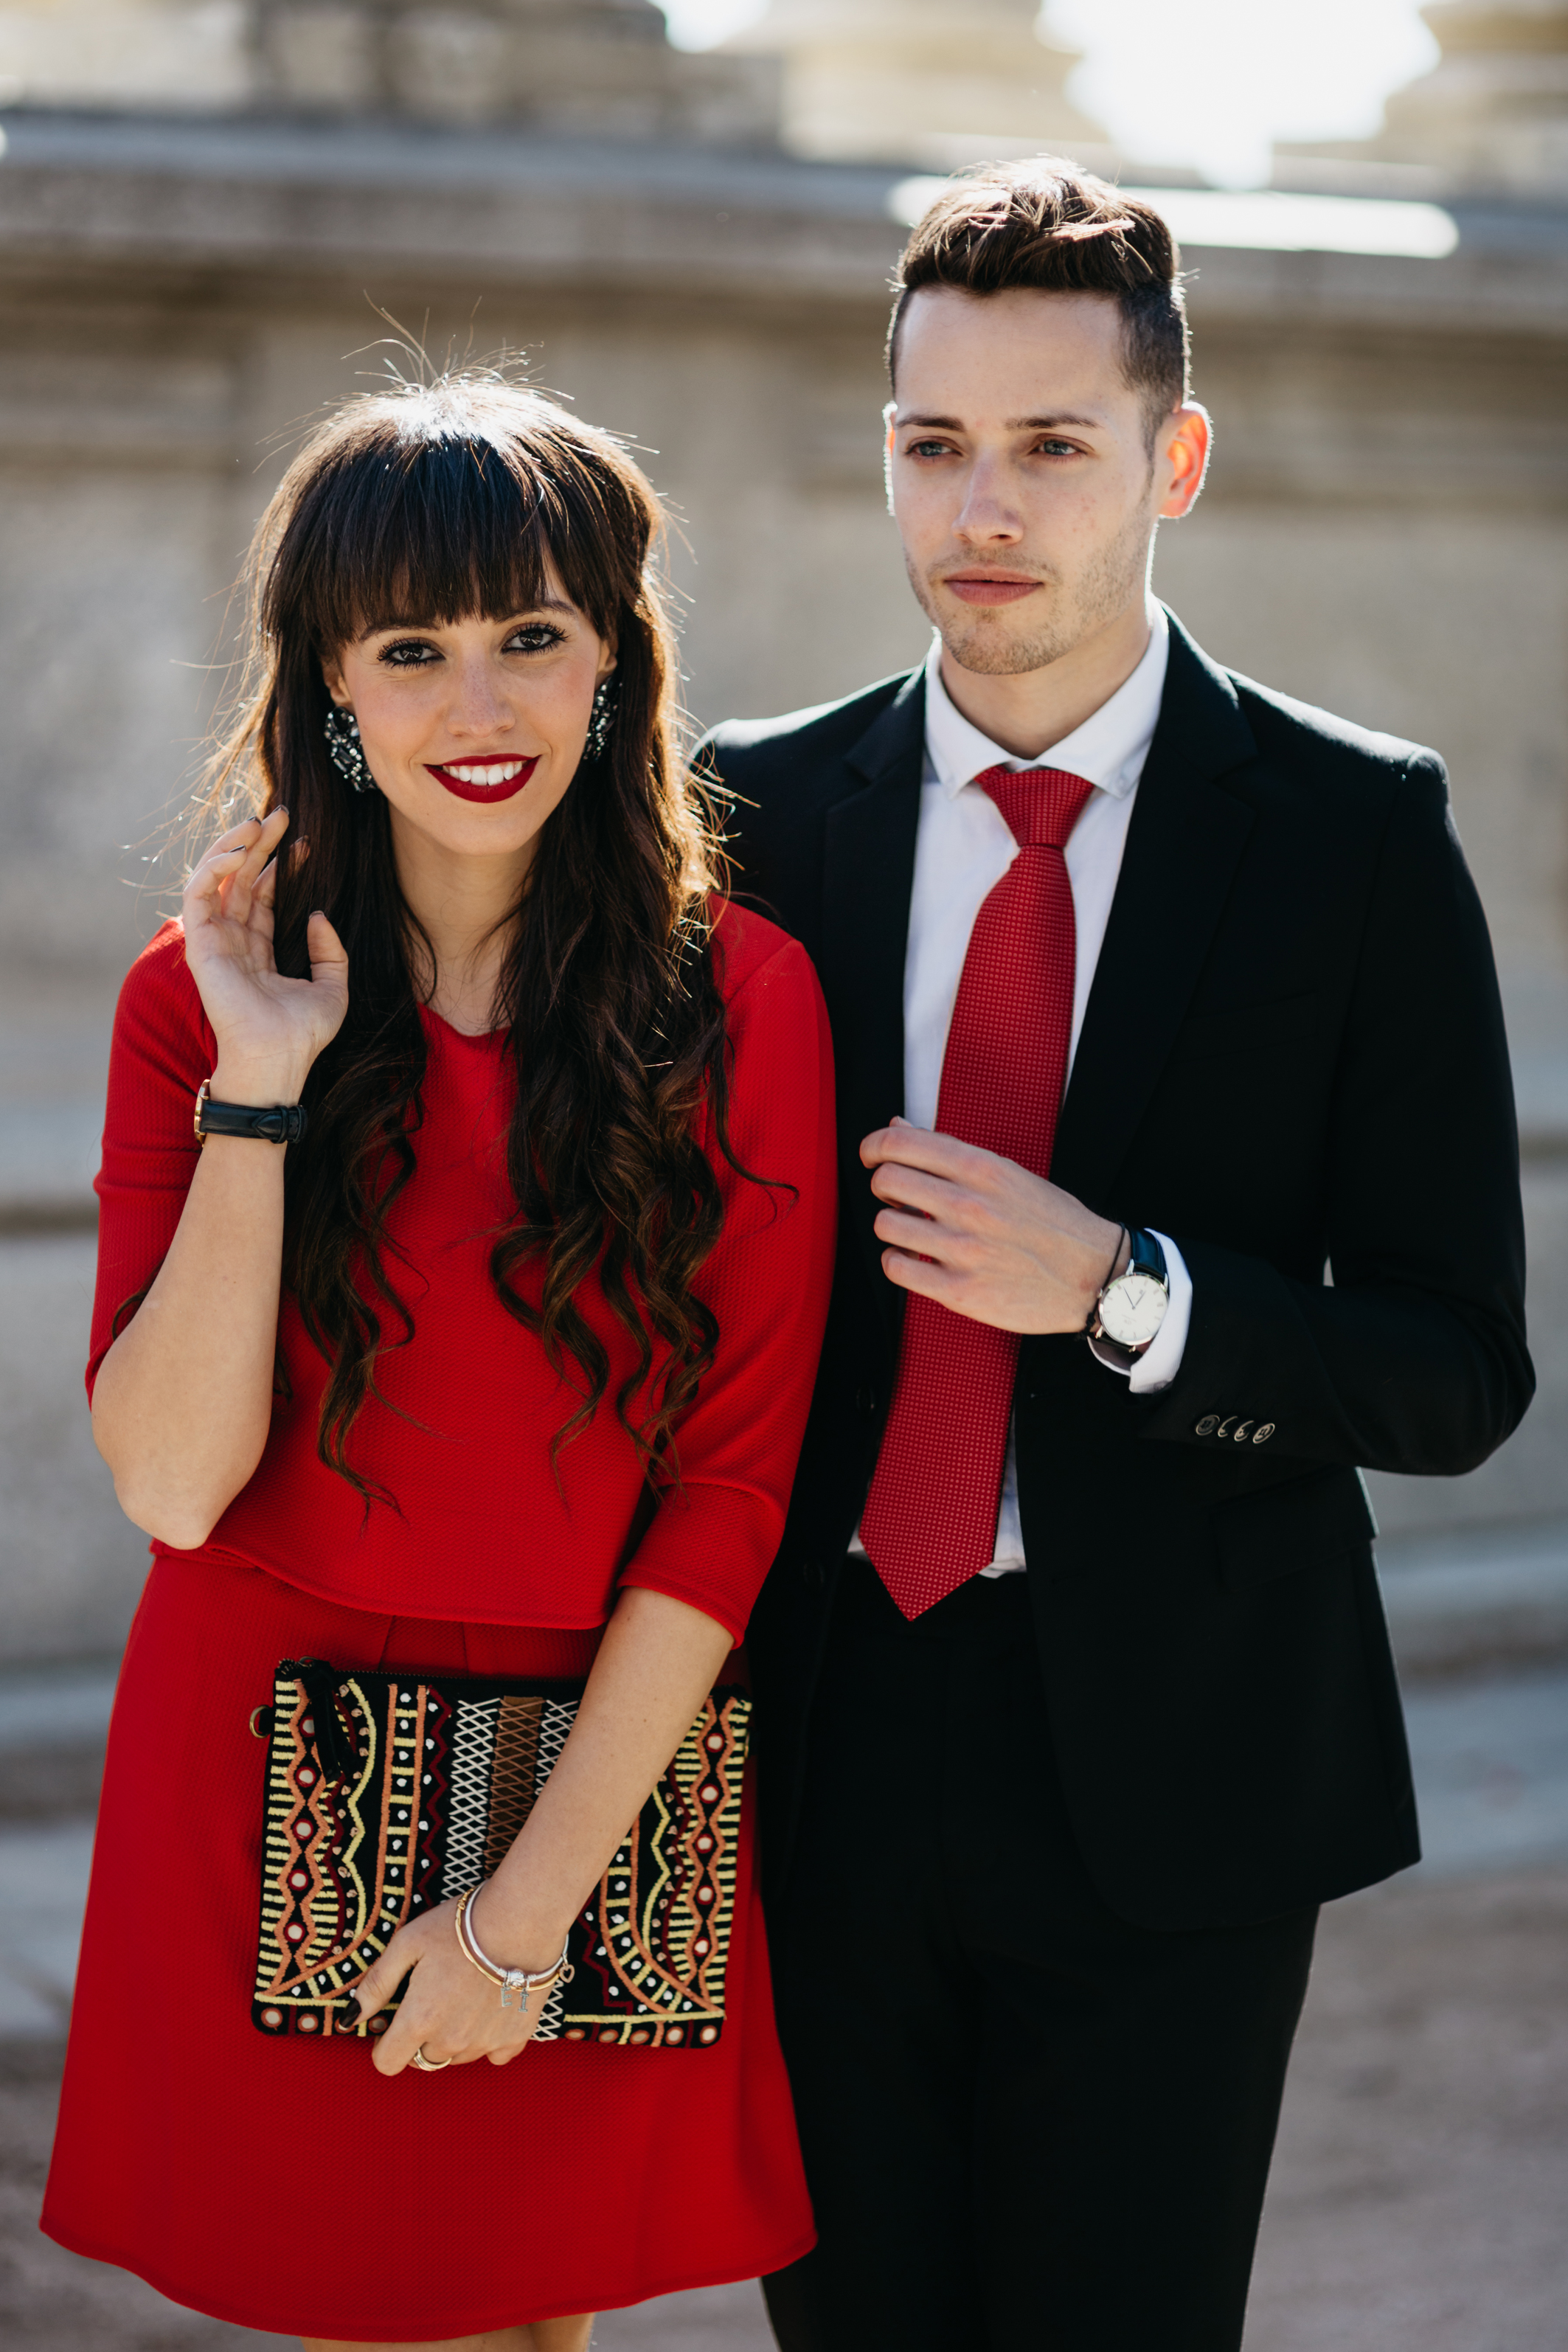 Street style, couple ceremony outfit, red dress, We say oui look